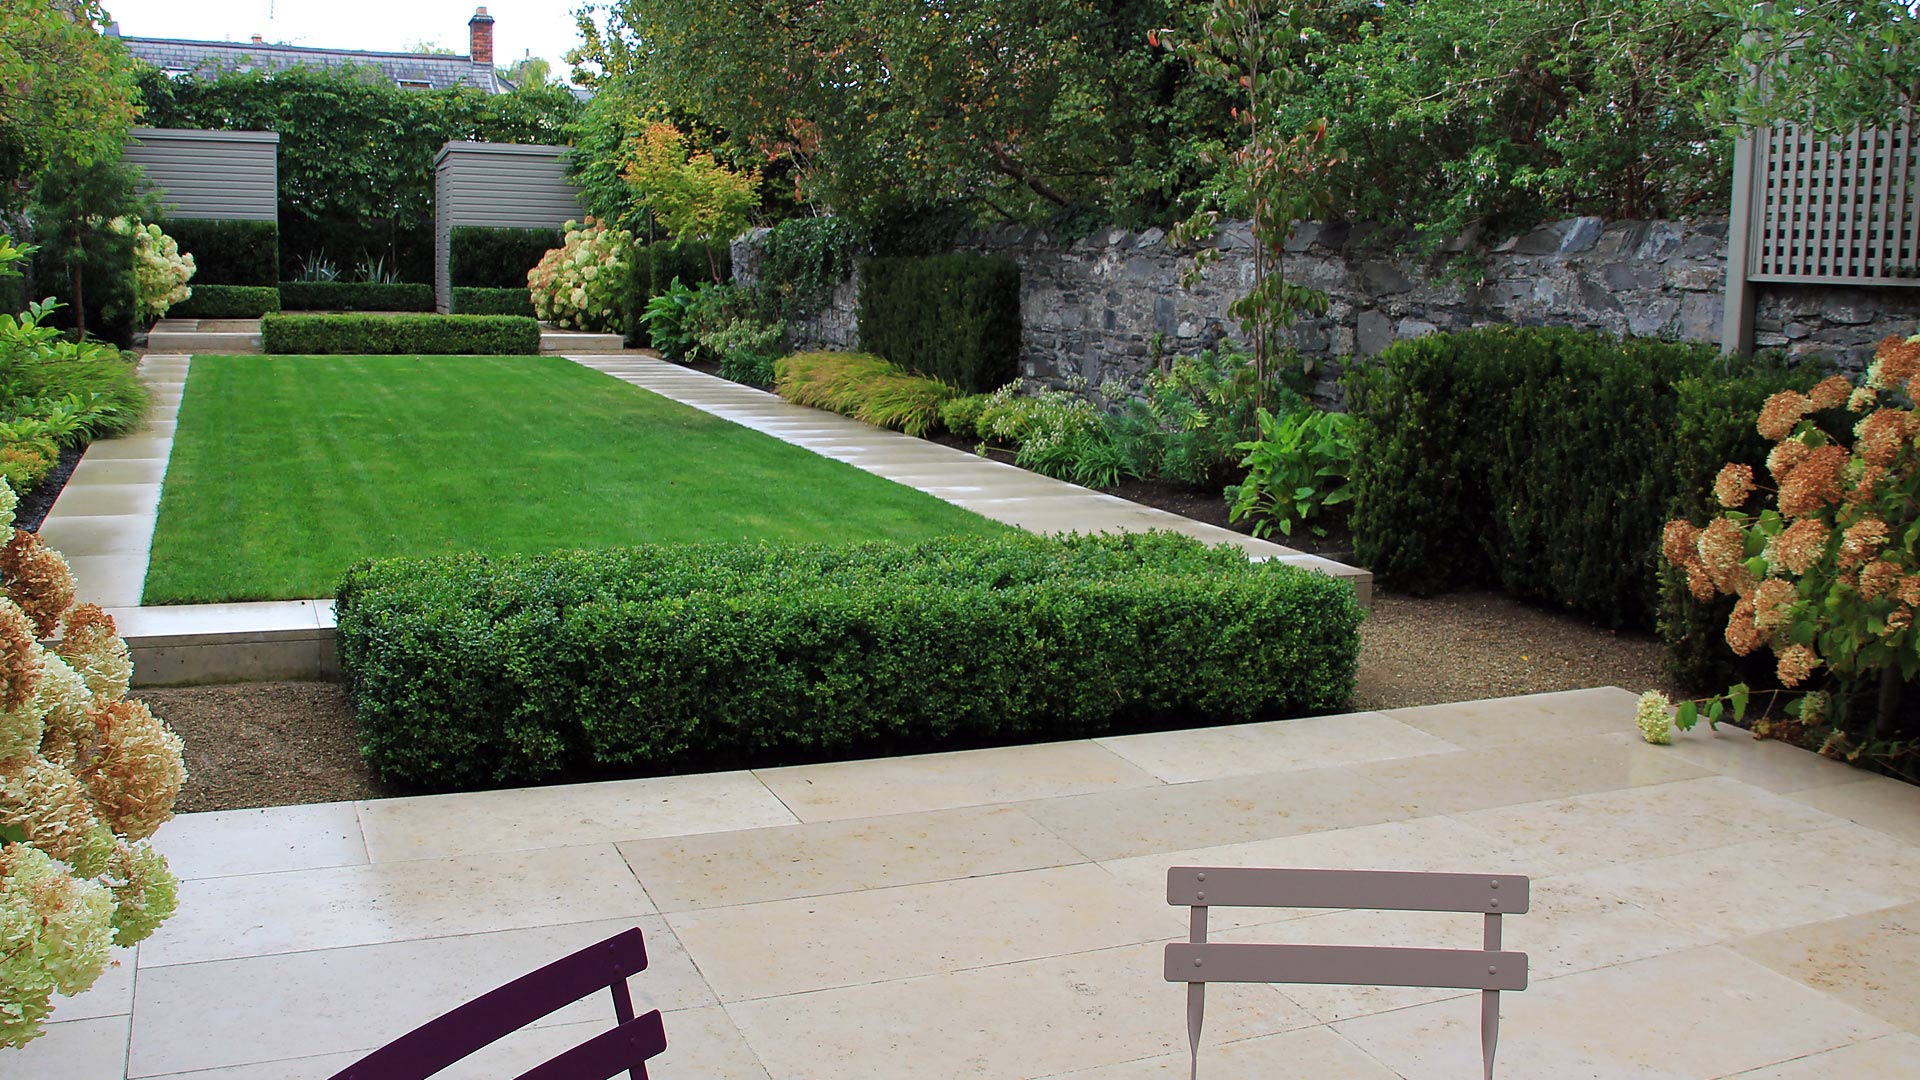 1000 images about trethewey contemporary lawn on for Garden renovation ideas